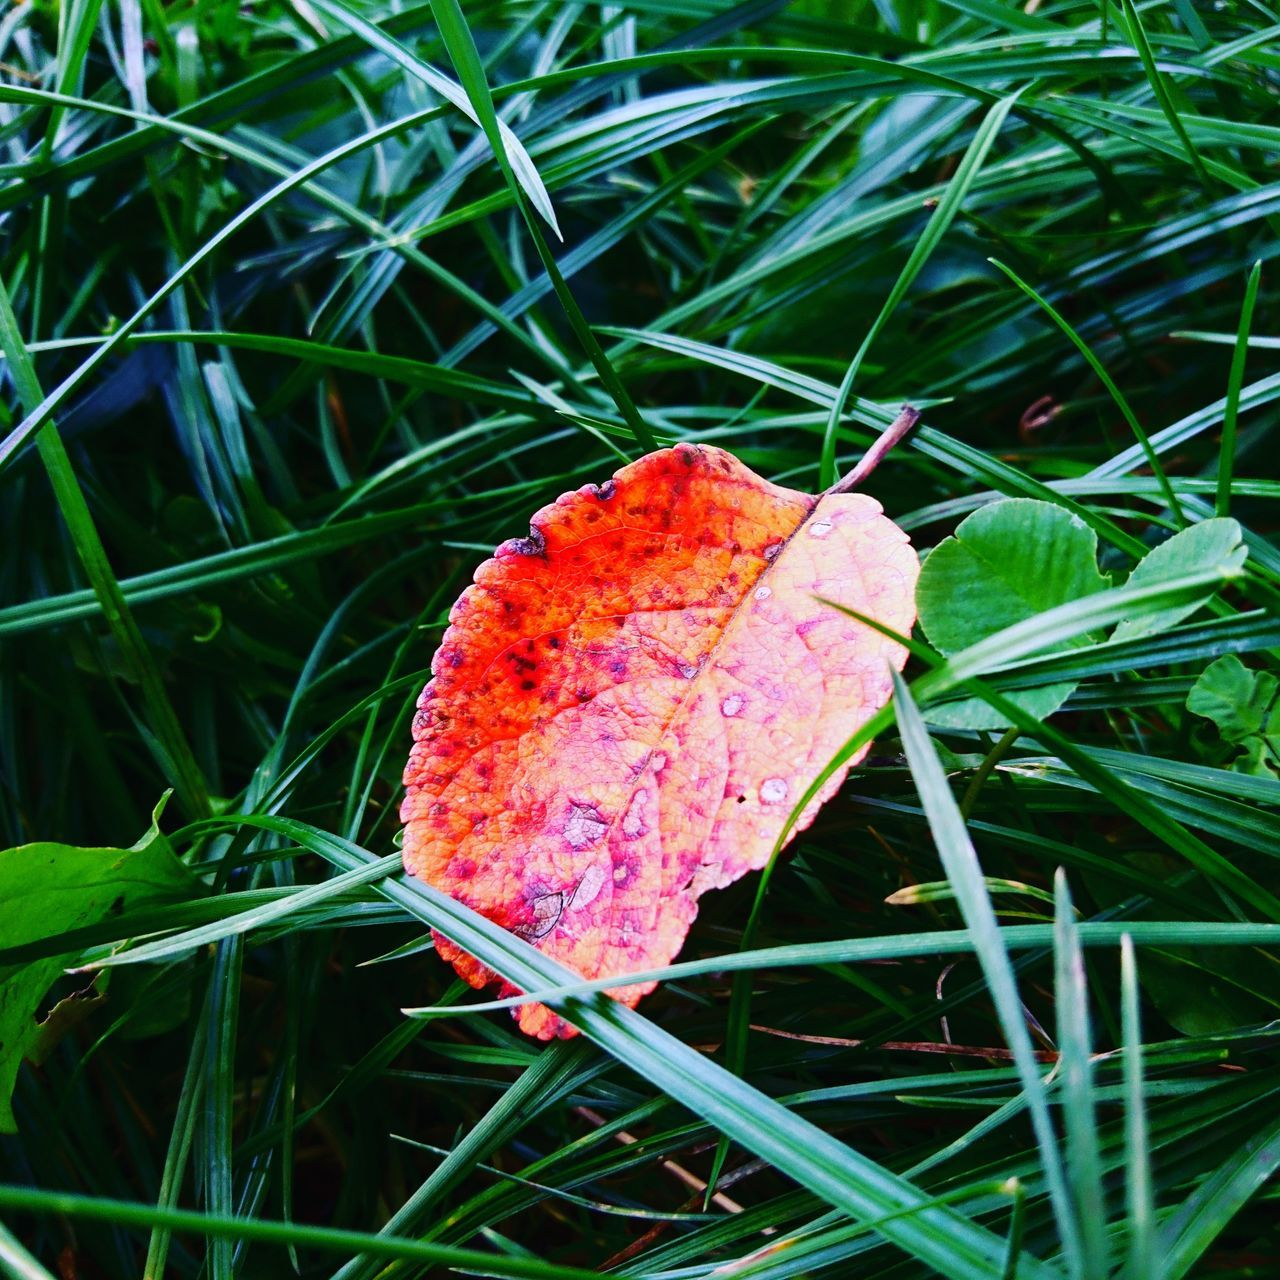 leaf, grass, change, nature, outdoors, autumn, day, green color, no people, growth, close-up, beauty in nature, field, fragility, plant, freshness, maple